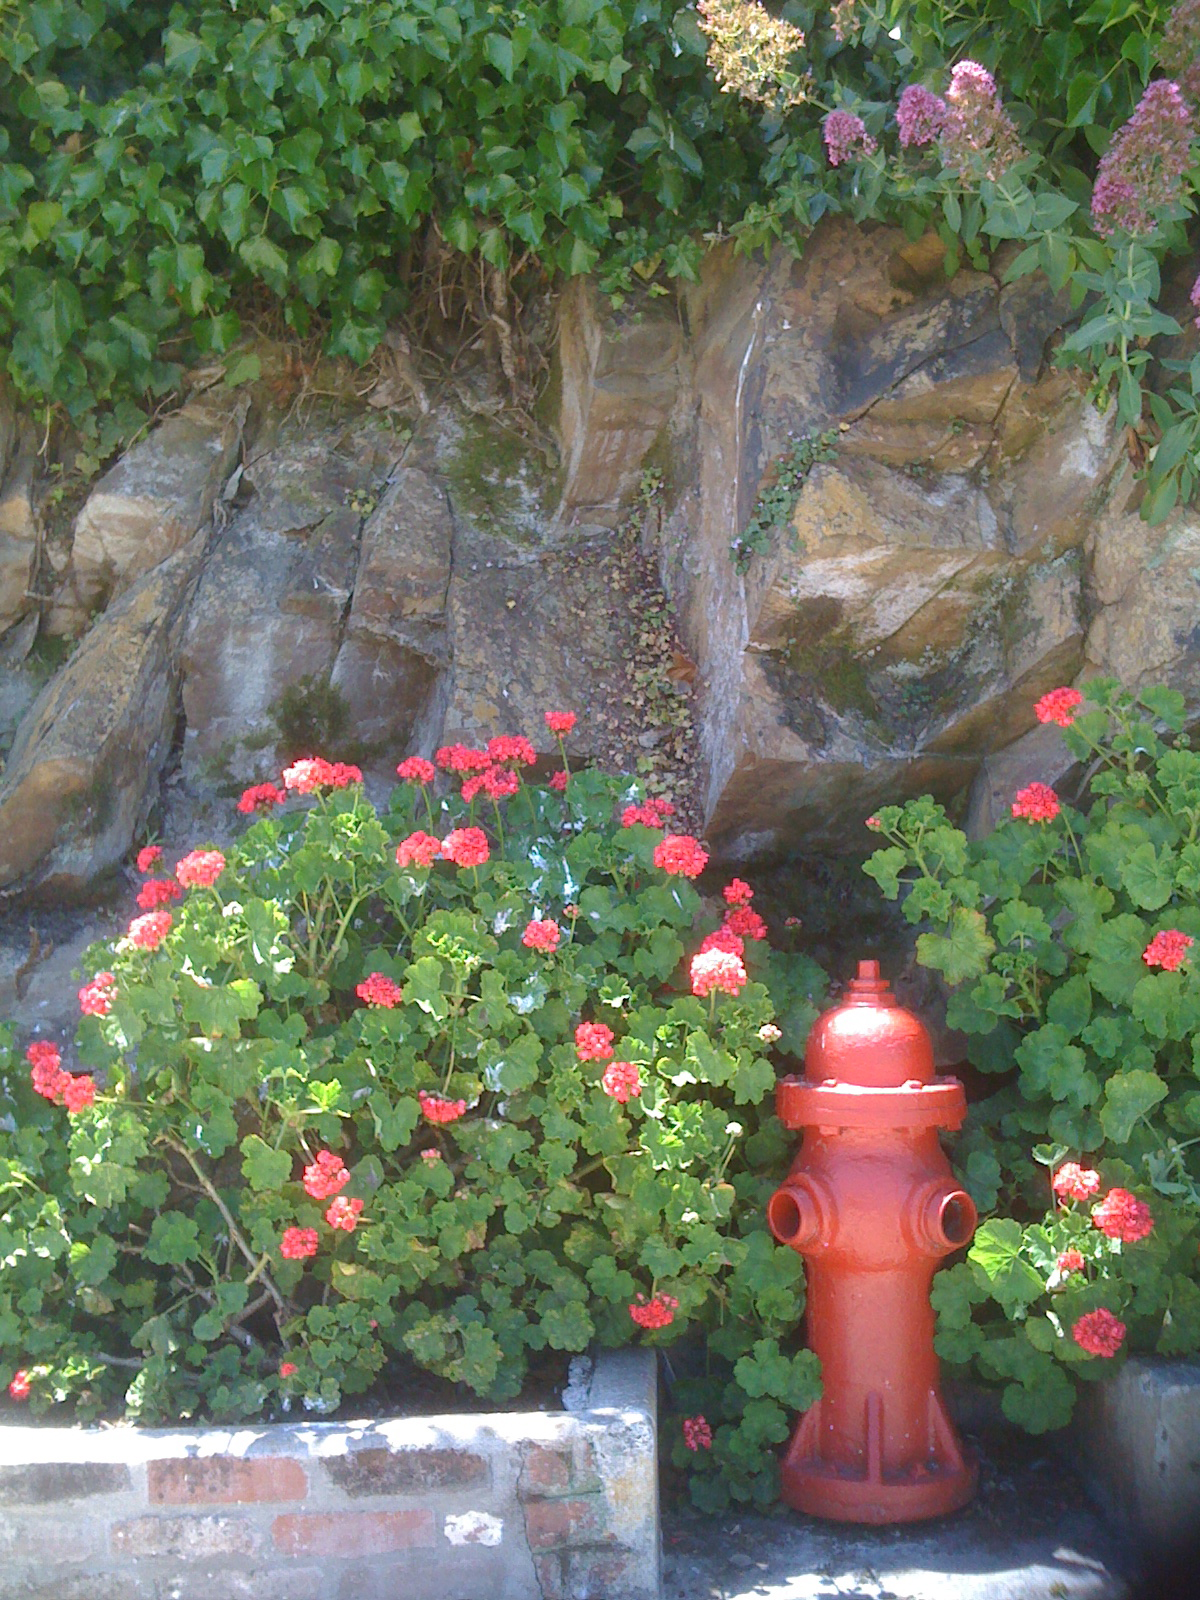 Hydrant with flowers